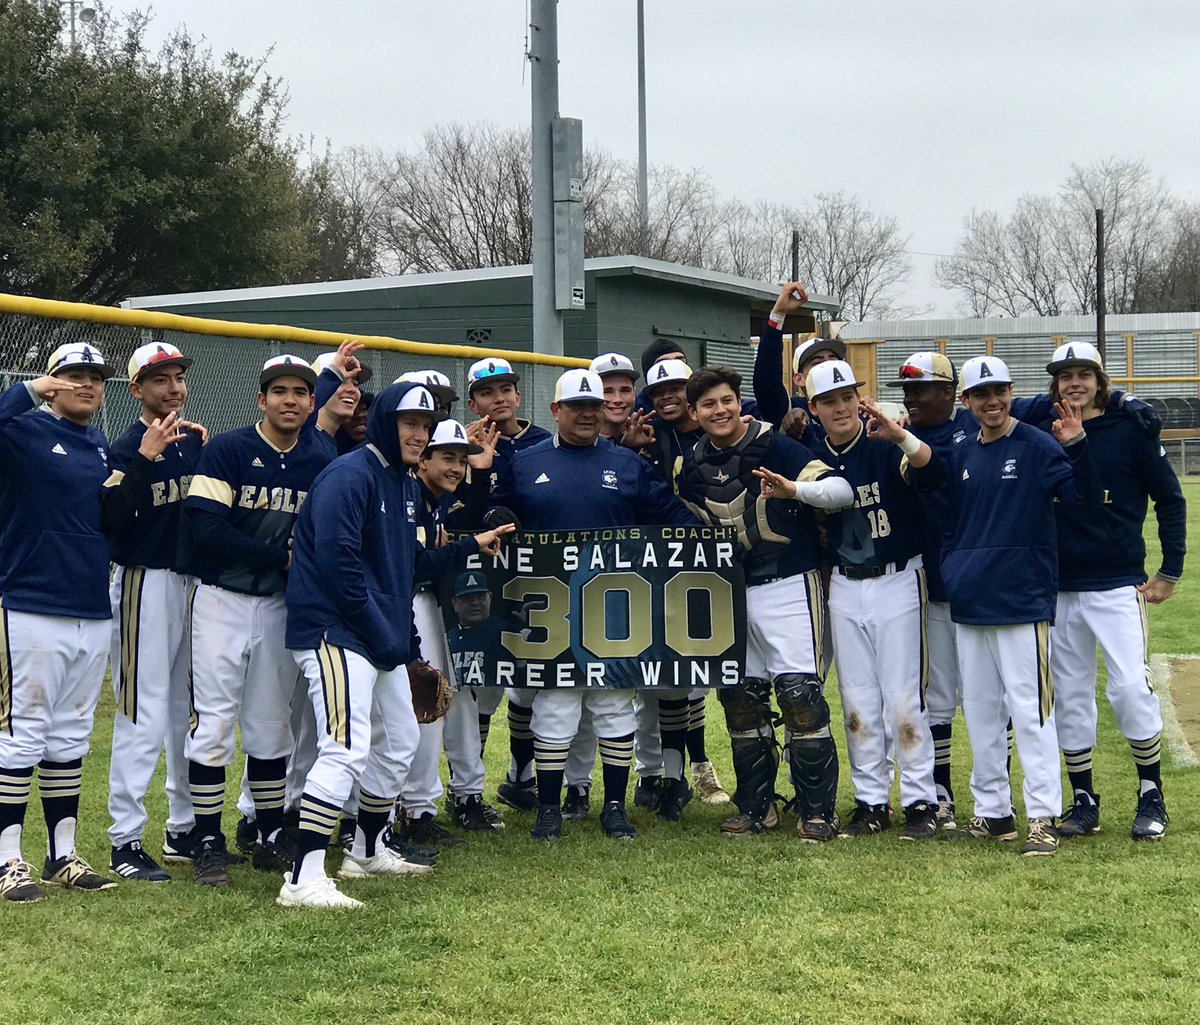 Head baseball coach Eugene Salazar and the baseball team show off a banner celebrating Salazar's 300th career win. The Varsity Baseball team defeated Leander High School 11-3, earning the distinction for Salazar.